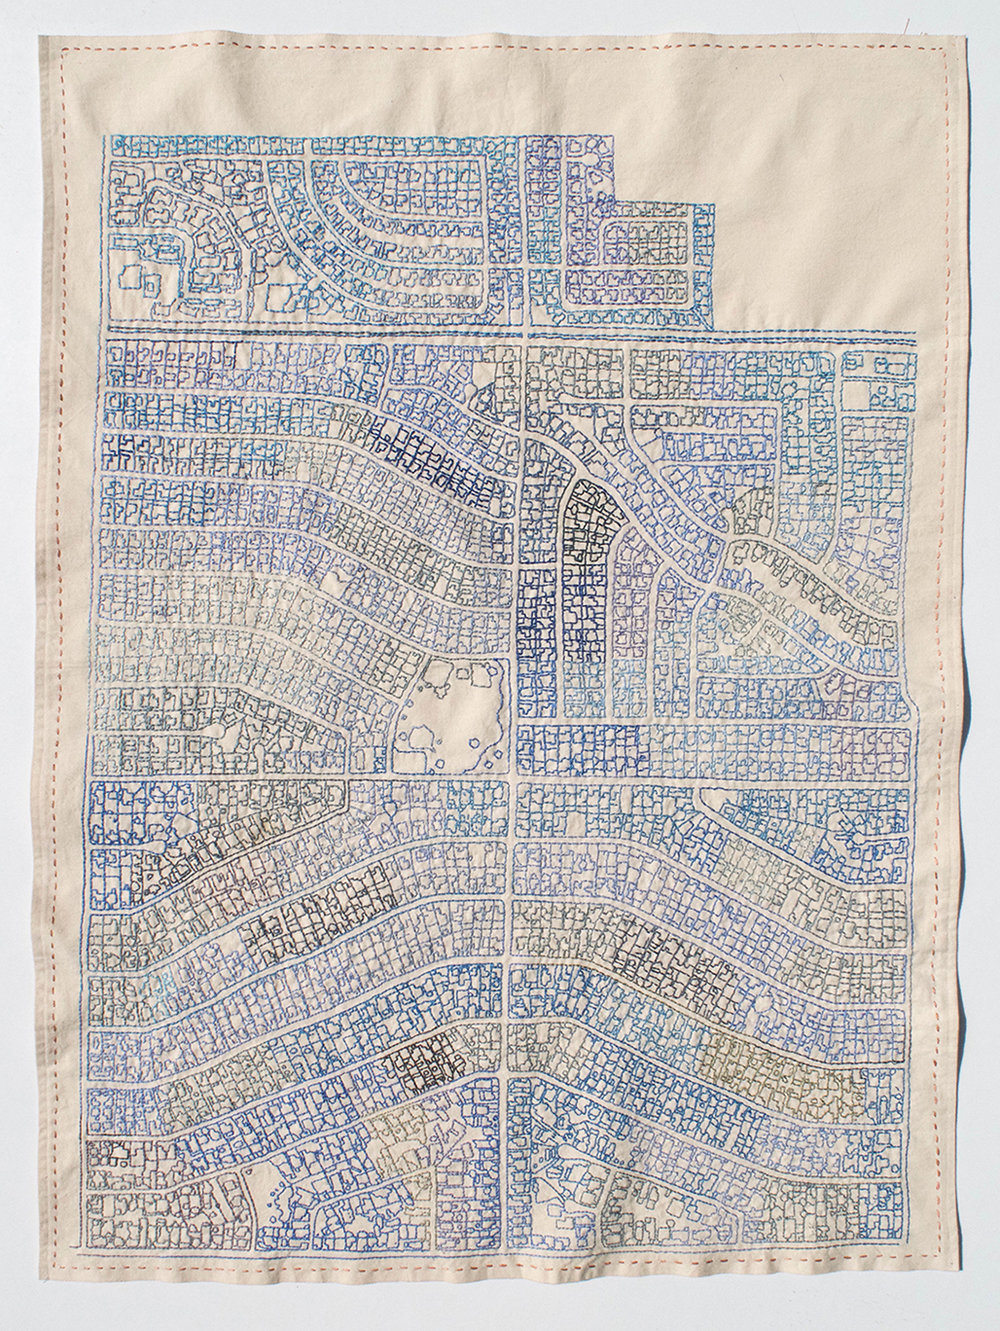 Cathedral City,embroidery thread on cotton fabric, 2017